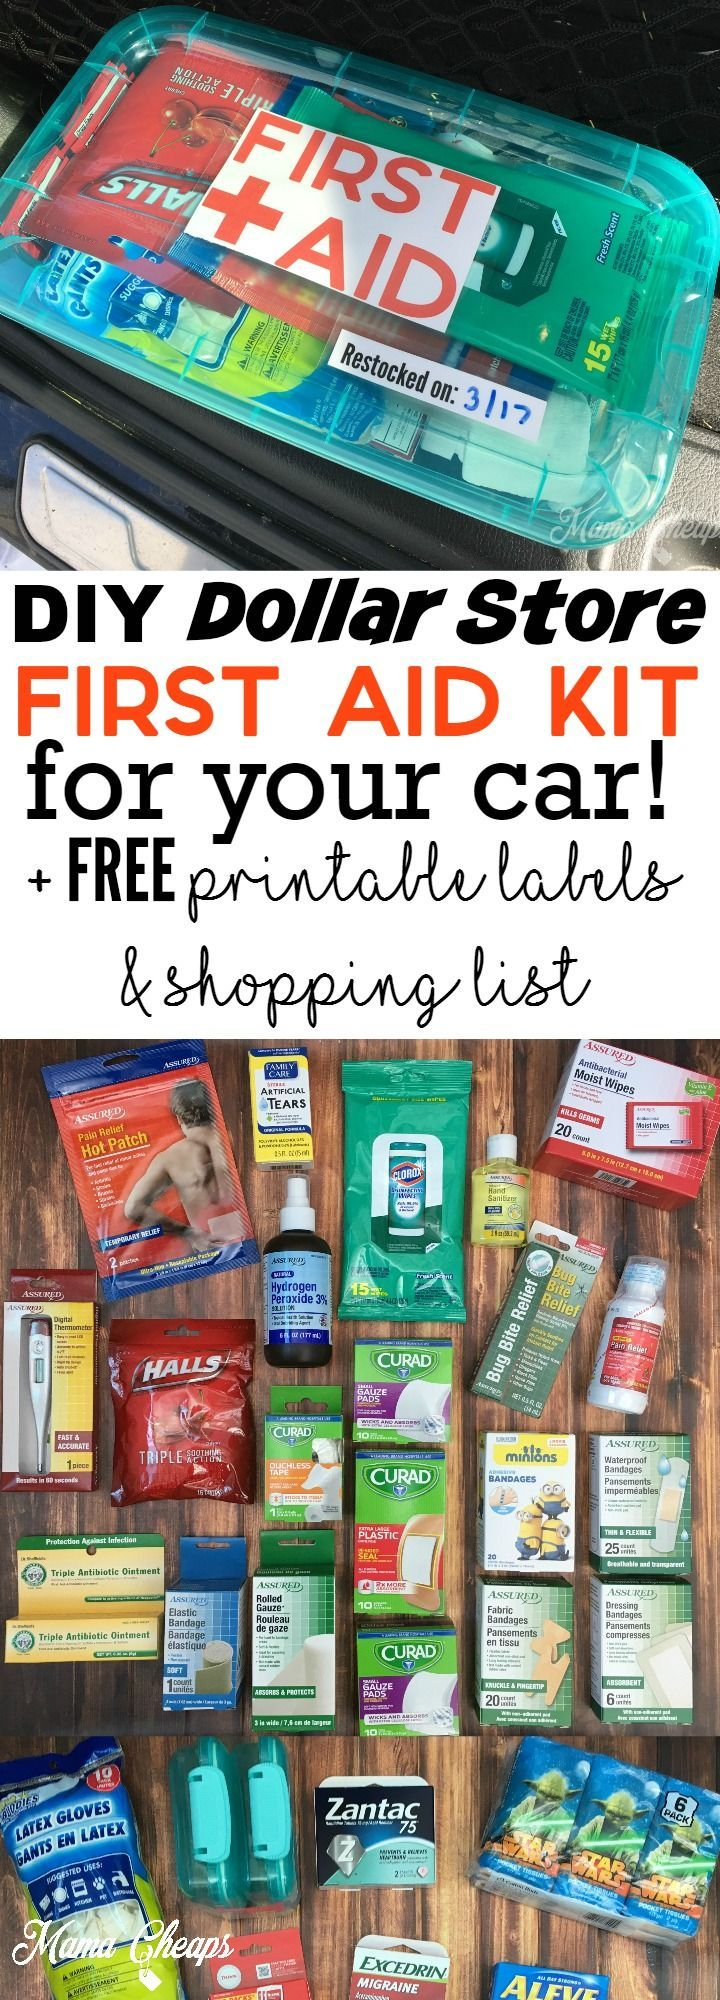 Diy dollar store first aid kit for your car free printable labels and shopping list